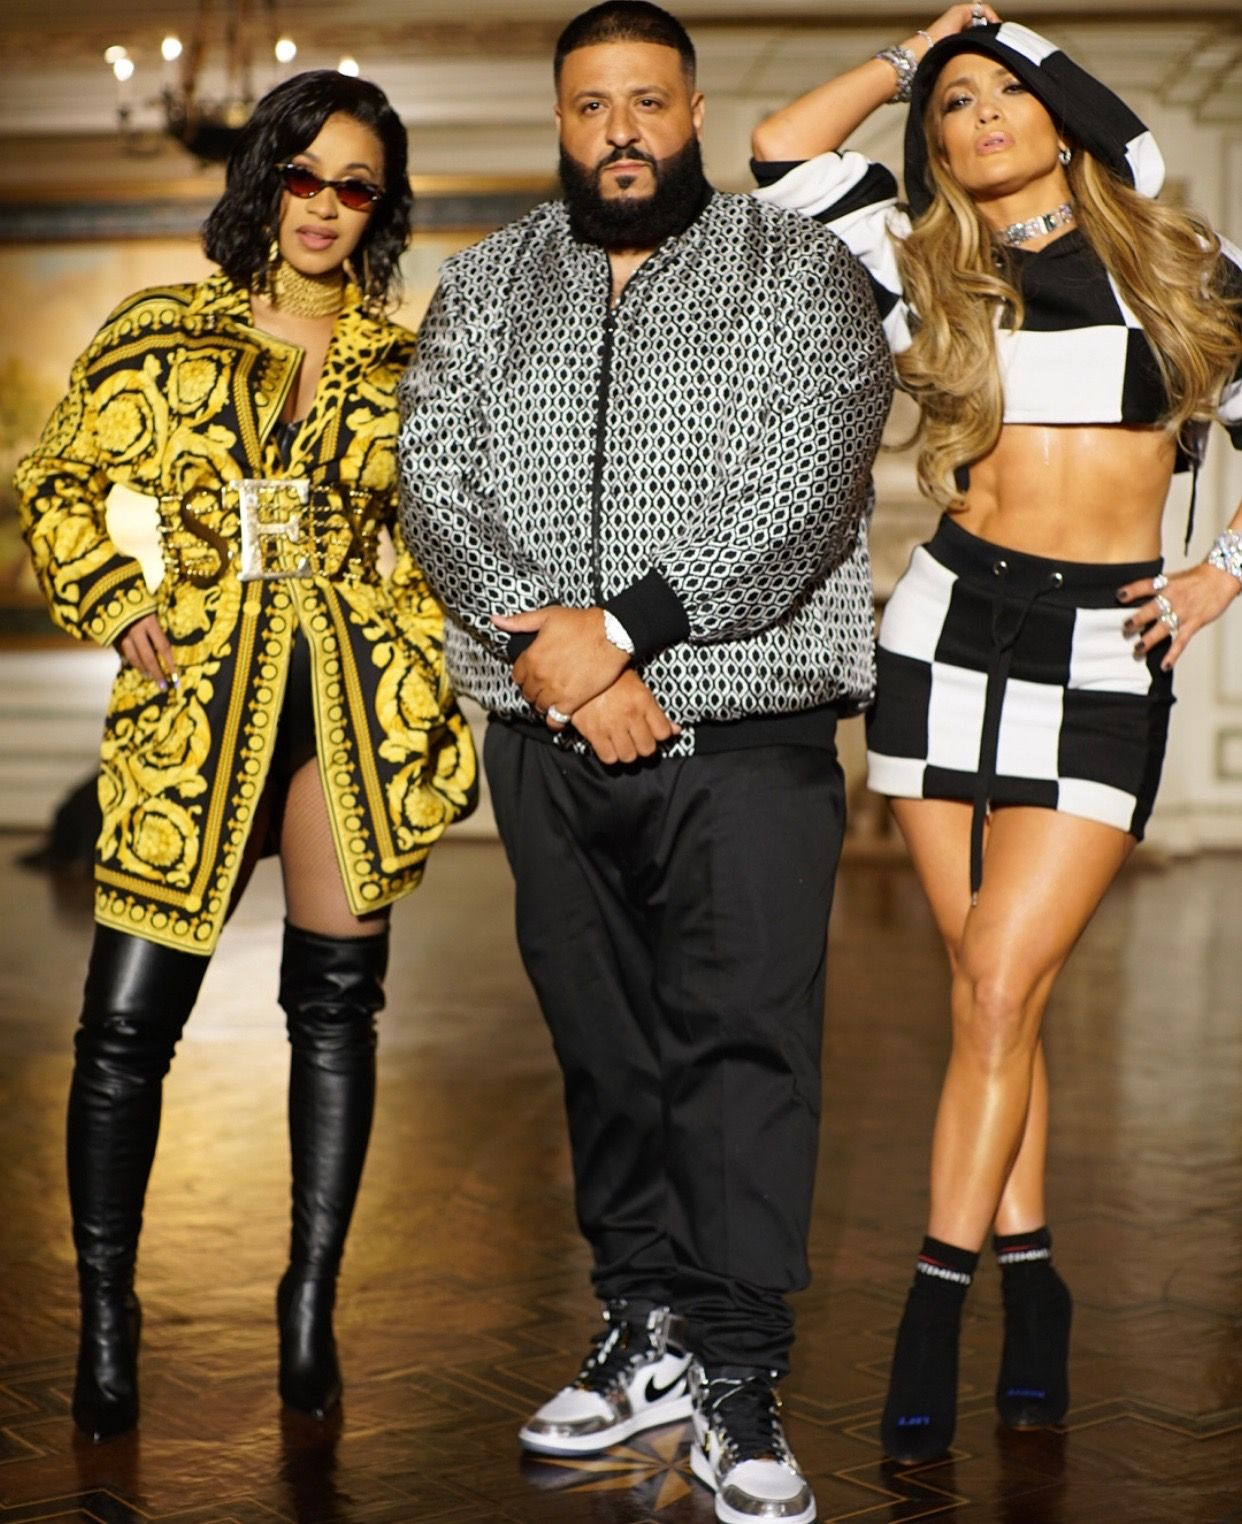 fc23dfd18fc Snapshot: Cardi B, DJ Khaled, and JLo Pose Behind-the-Scenes At Their  'Dinero' Video Shoot - Fashion Bomb Daily Style Magazine: Celebrity Fashion,  Fashion ...